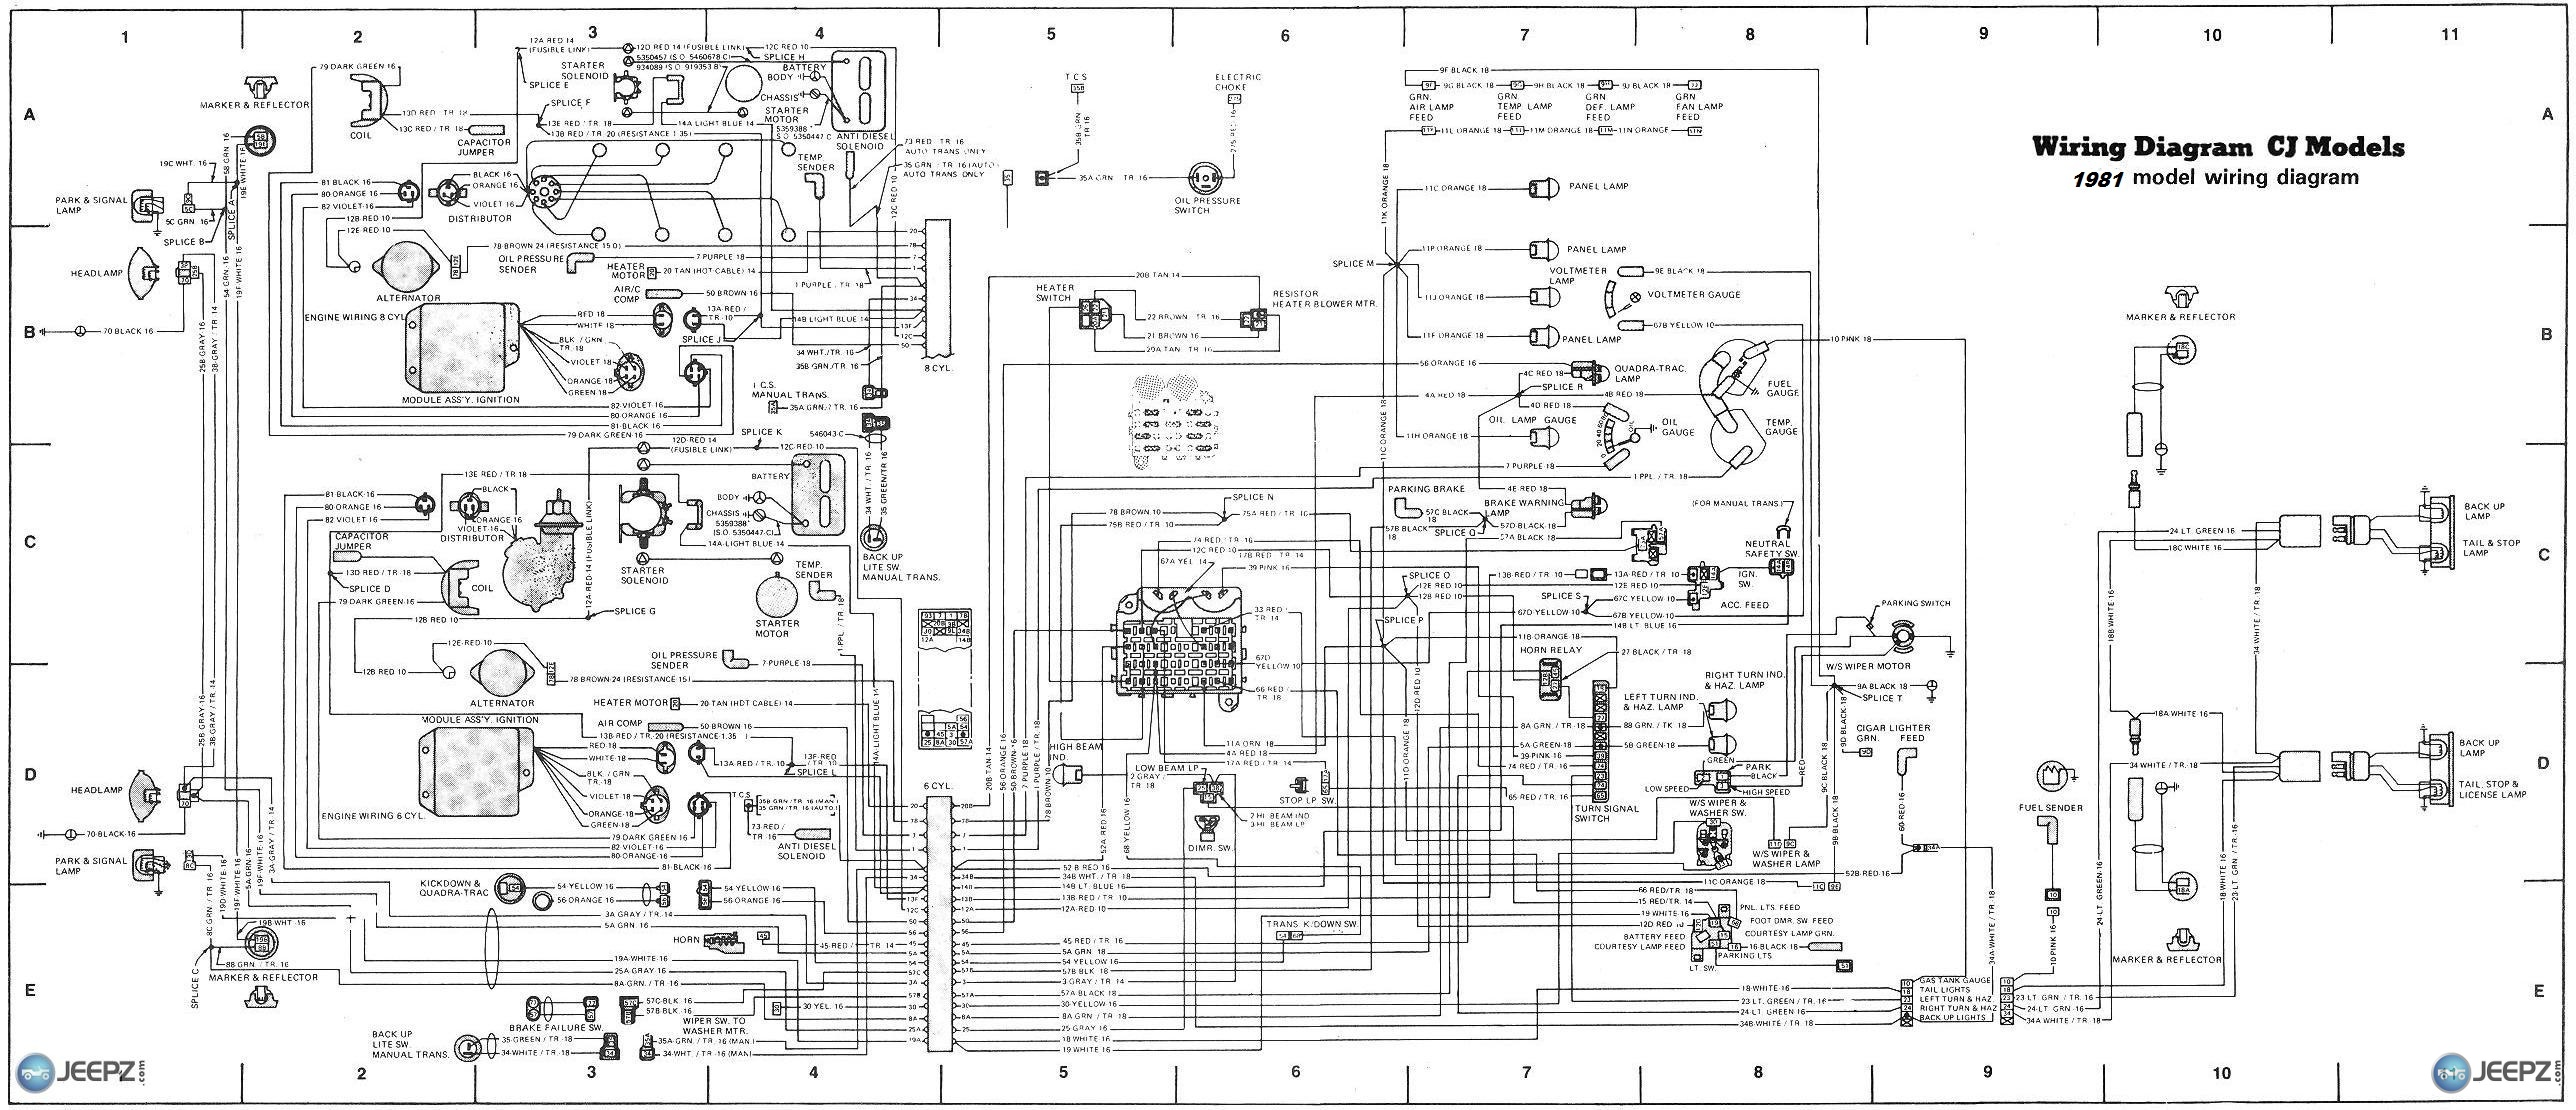 1980 jeep cj7 wiring diagram auto electrical wiring diagram 1972 jeep cj5  wiring-diagram 1980